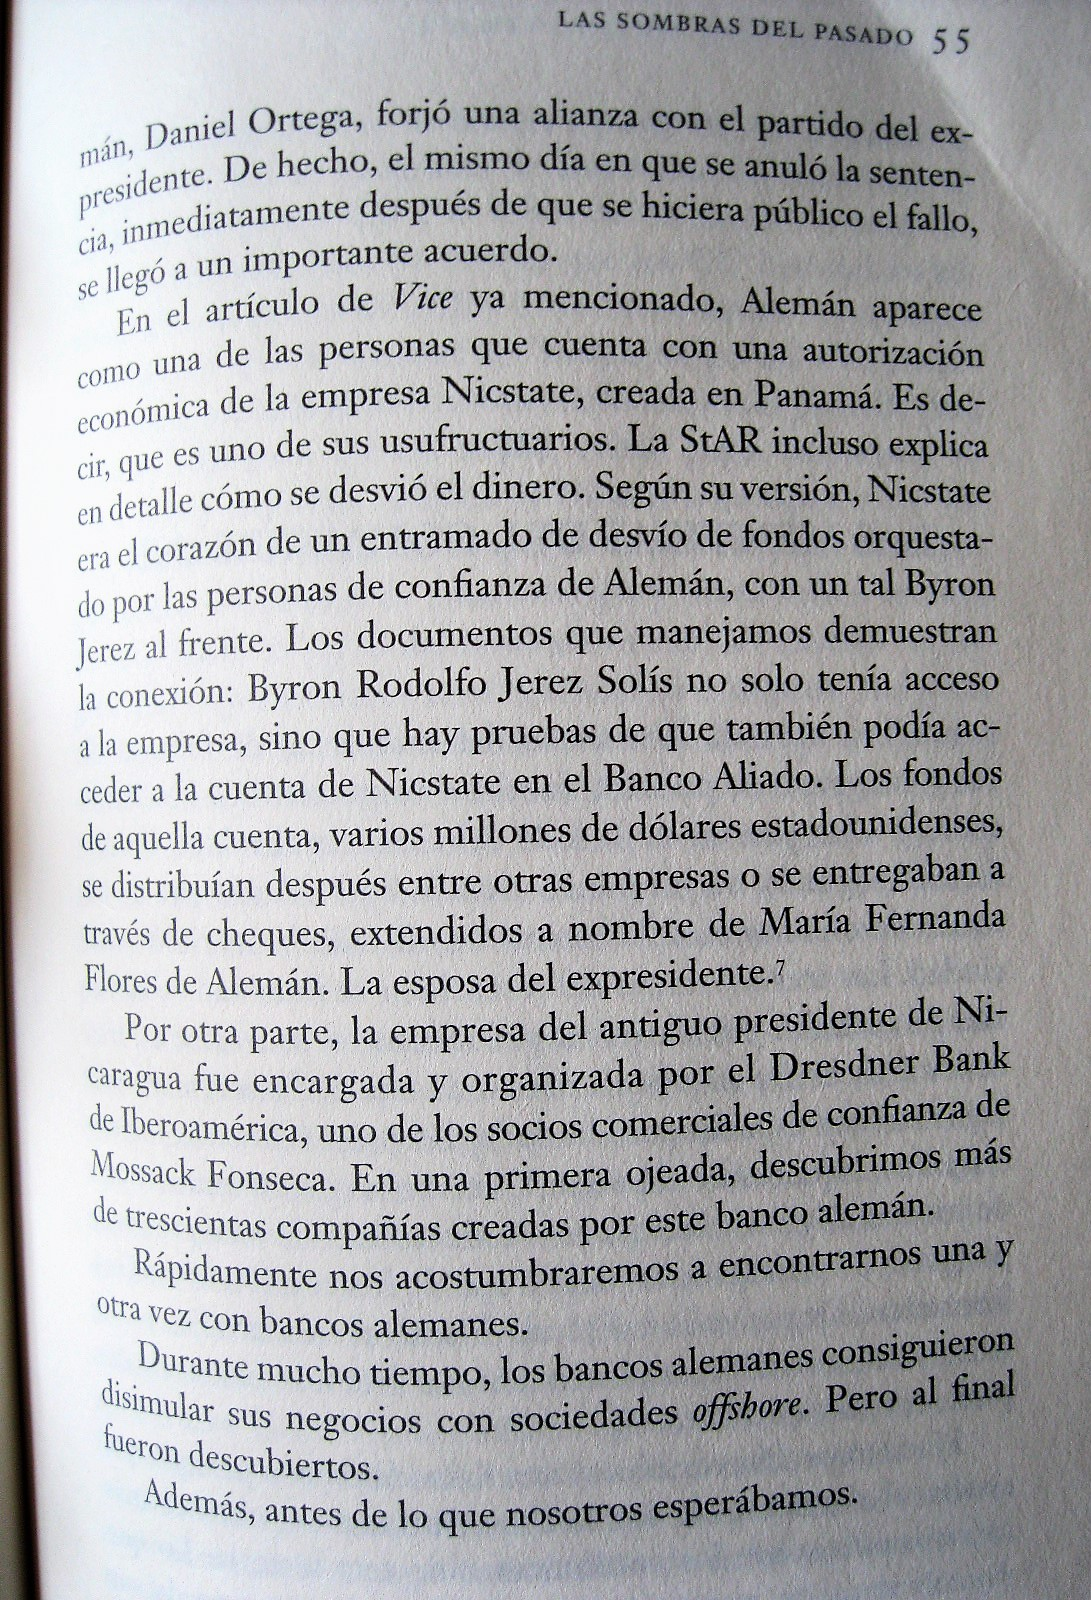 Panama Papers Pag. 55